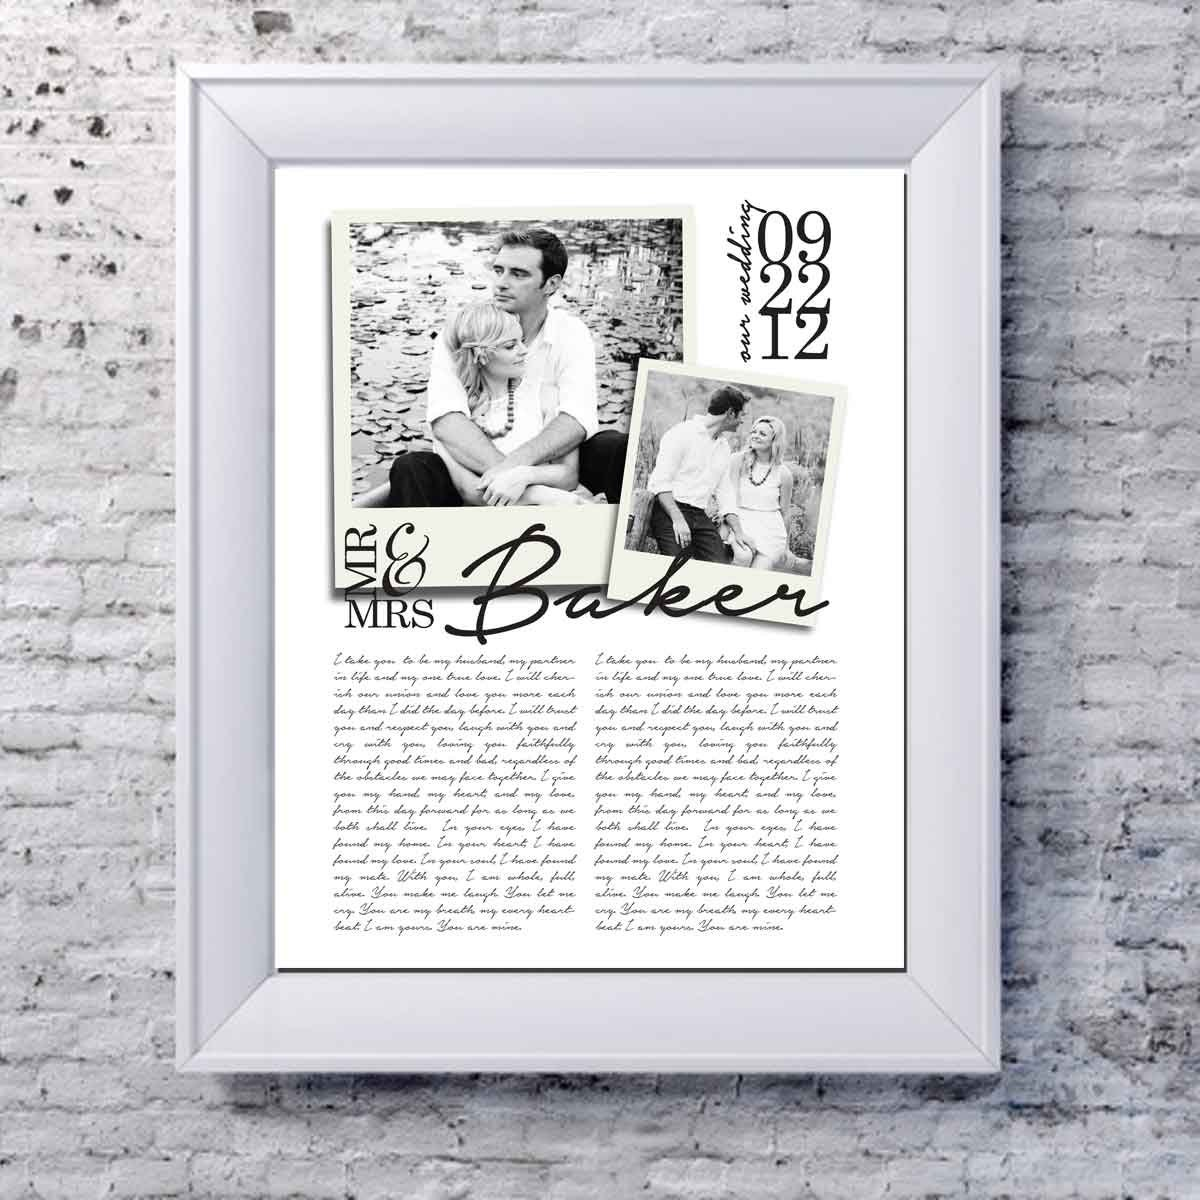 Personalized Wedding Vows: Unique Wedding Gift Custom Wedding Vows Print With Photos